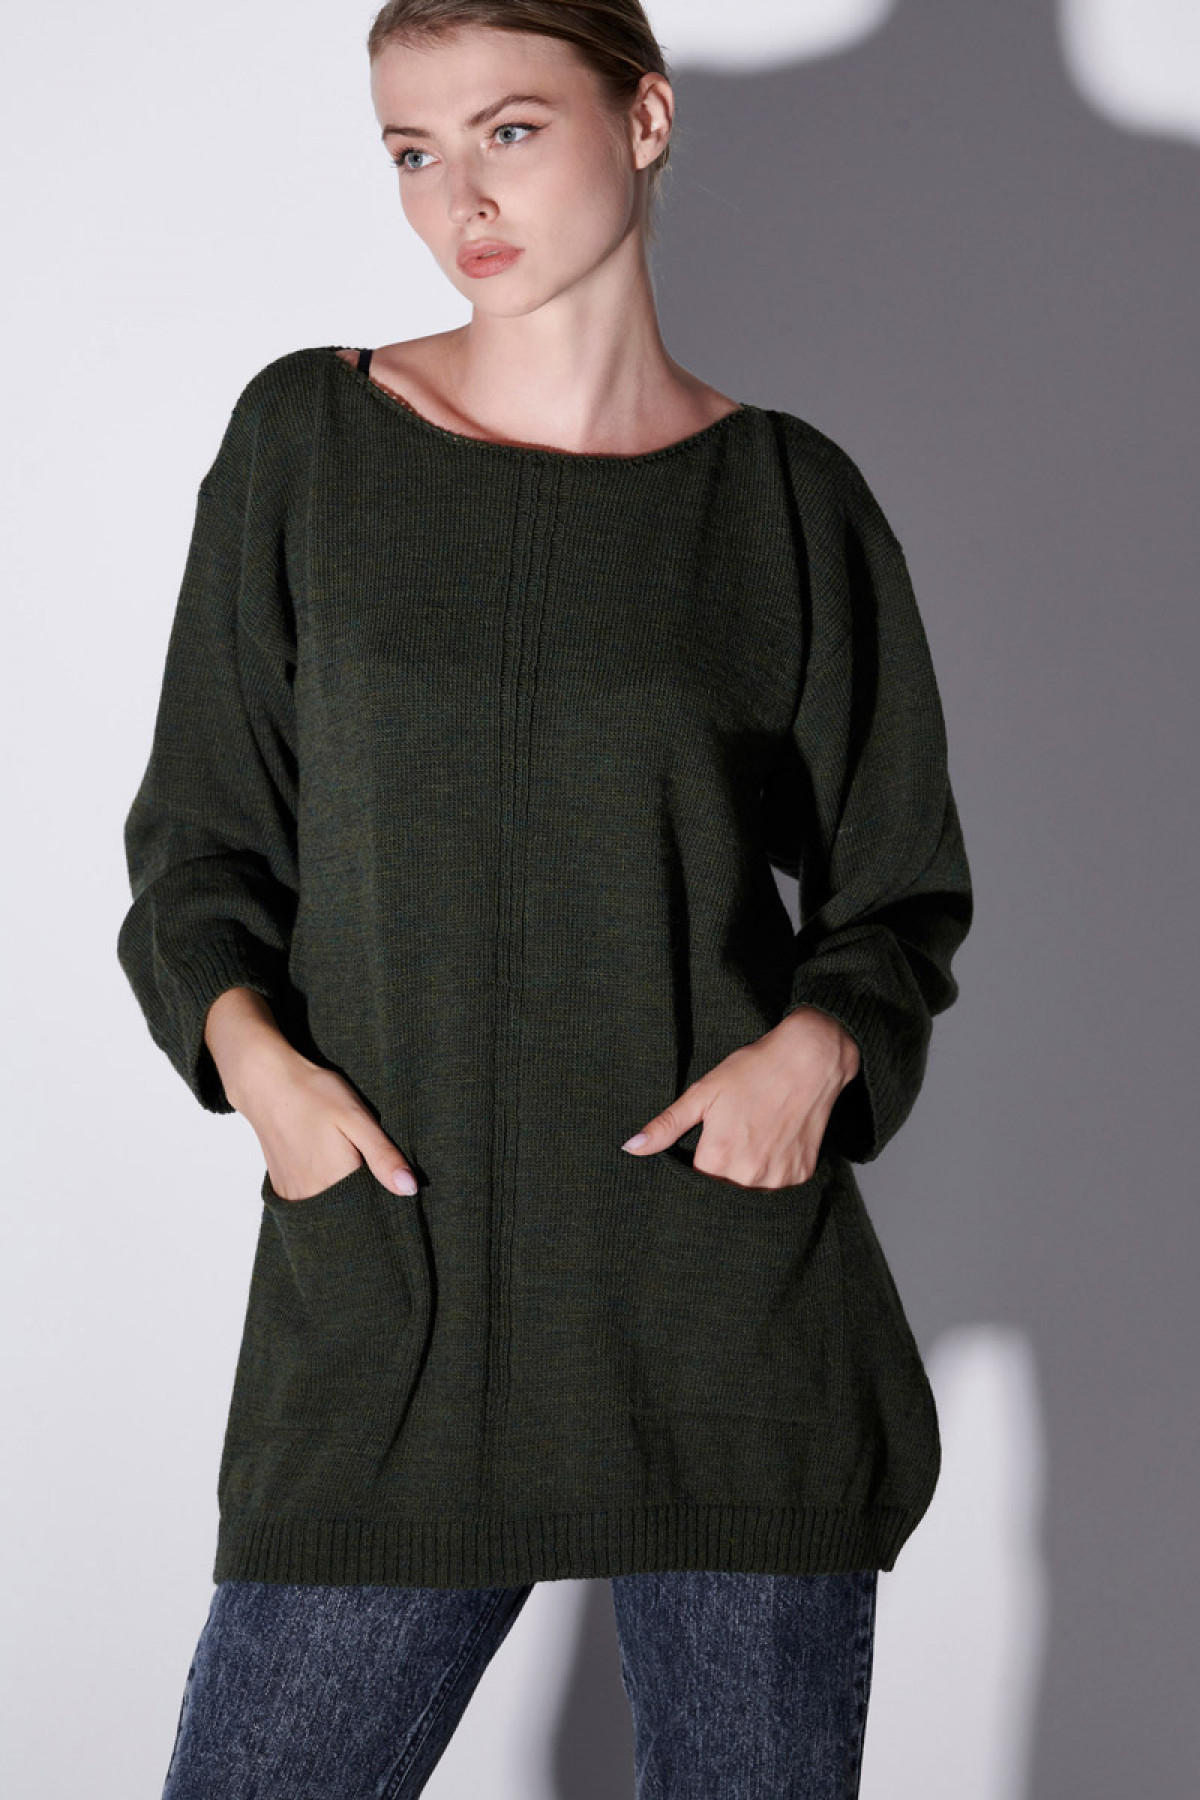 WOOL SWEATER WITH POCKETS IN OLIVE GREEN